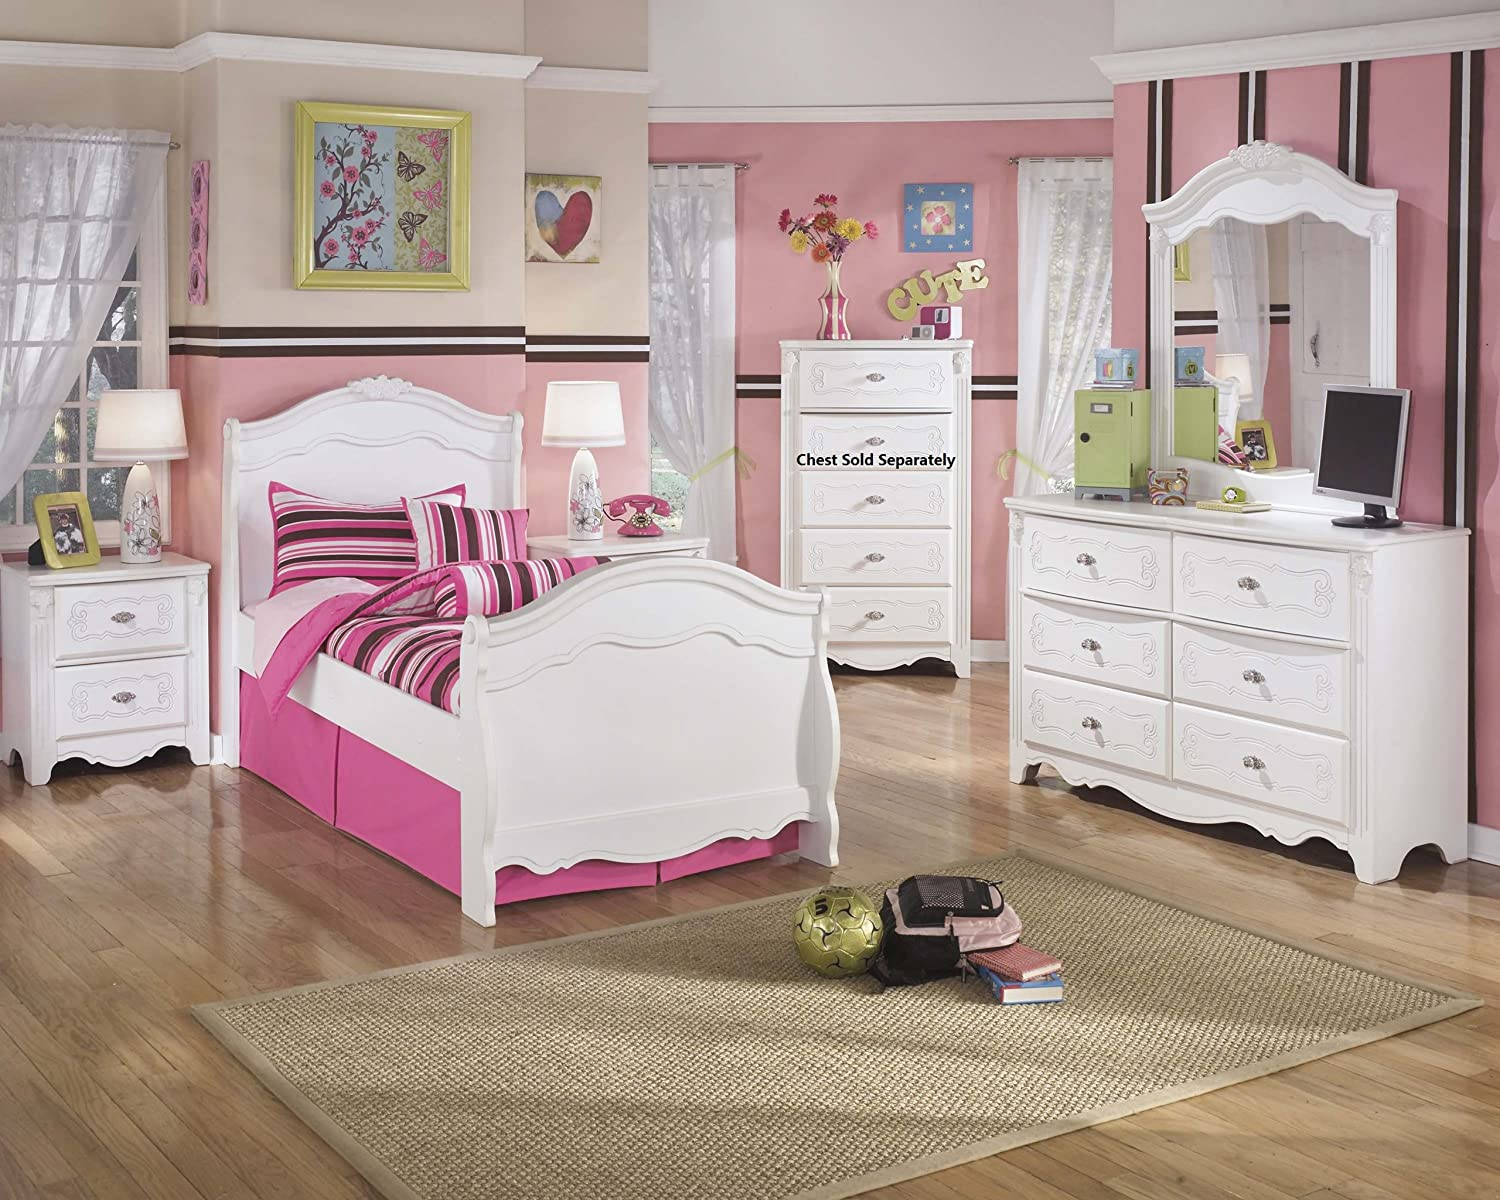 Amazon.com - Exquisite Youth Twin Size Sleigh Bed Room Set in ...